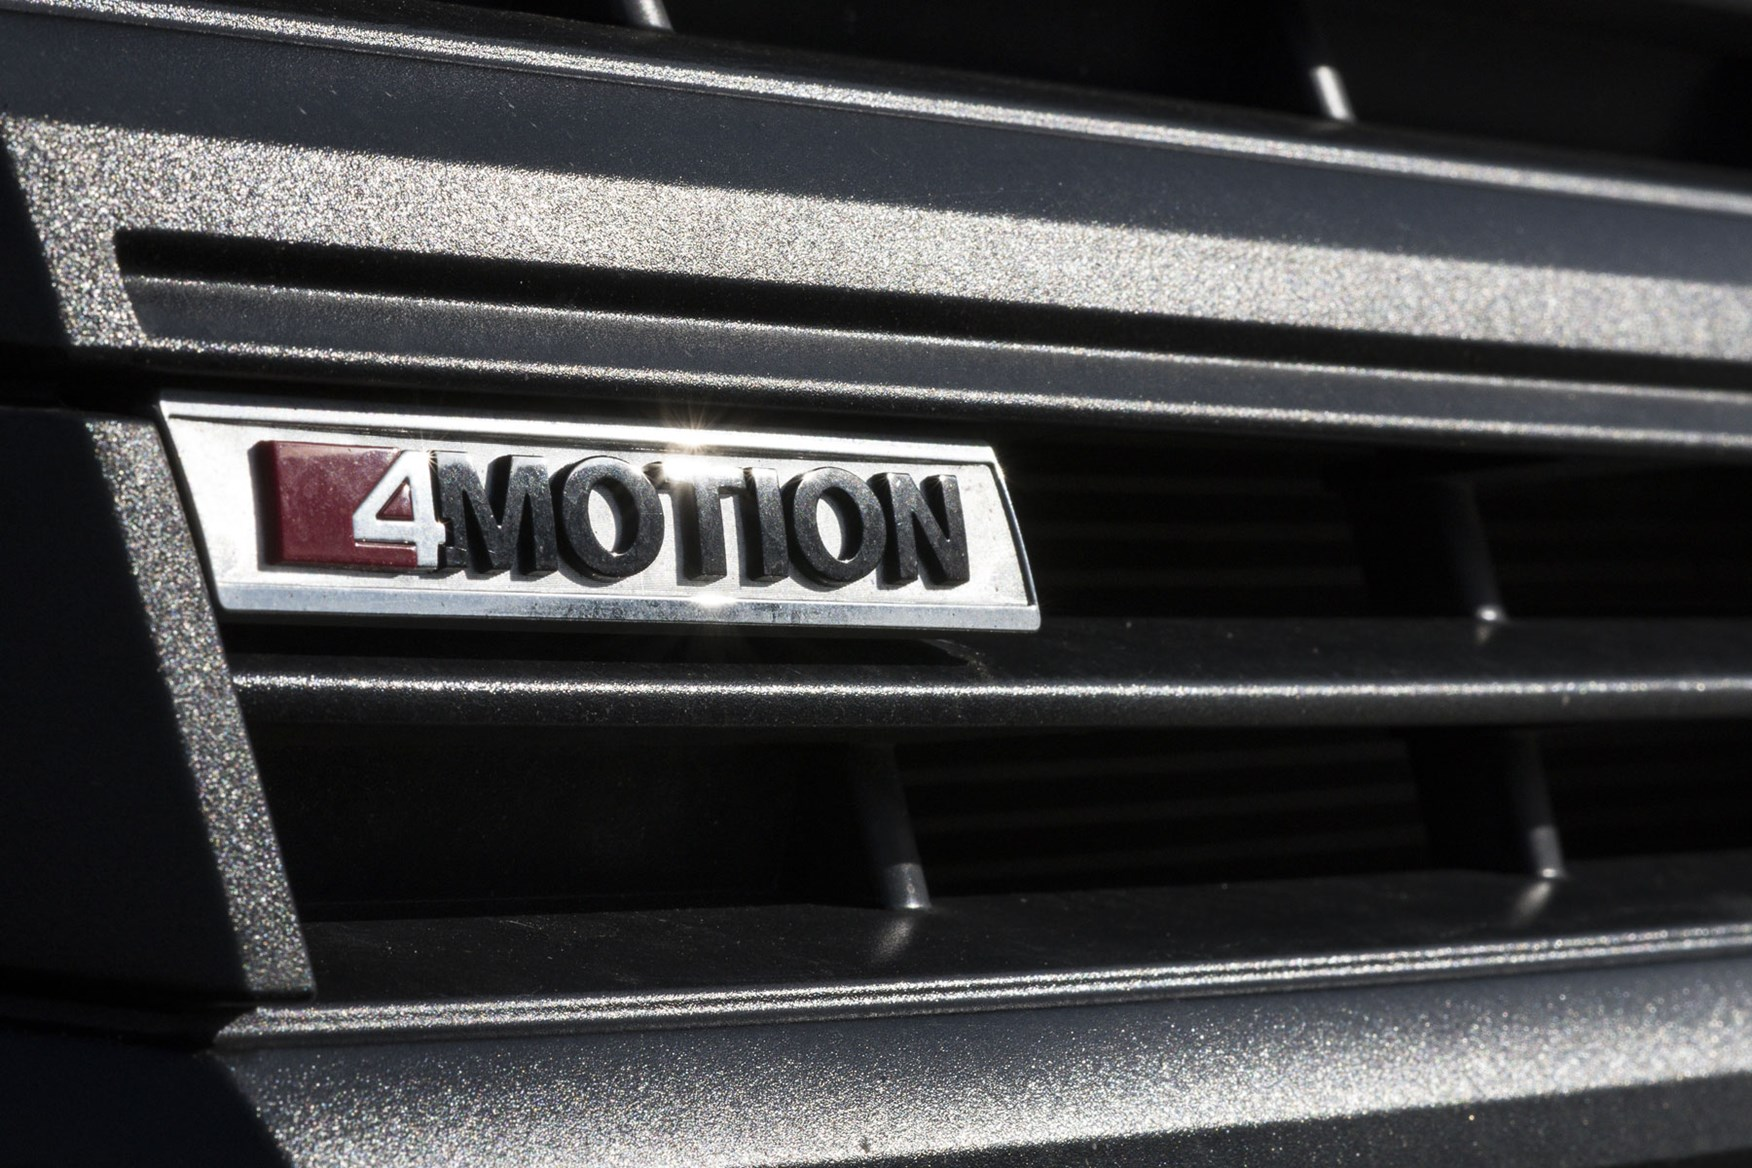 VW Crafter review - 4Motion four-wheel drive grille badge